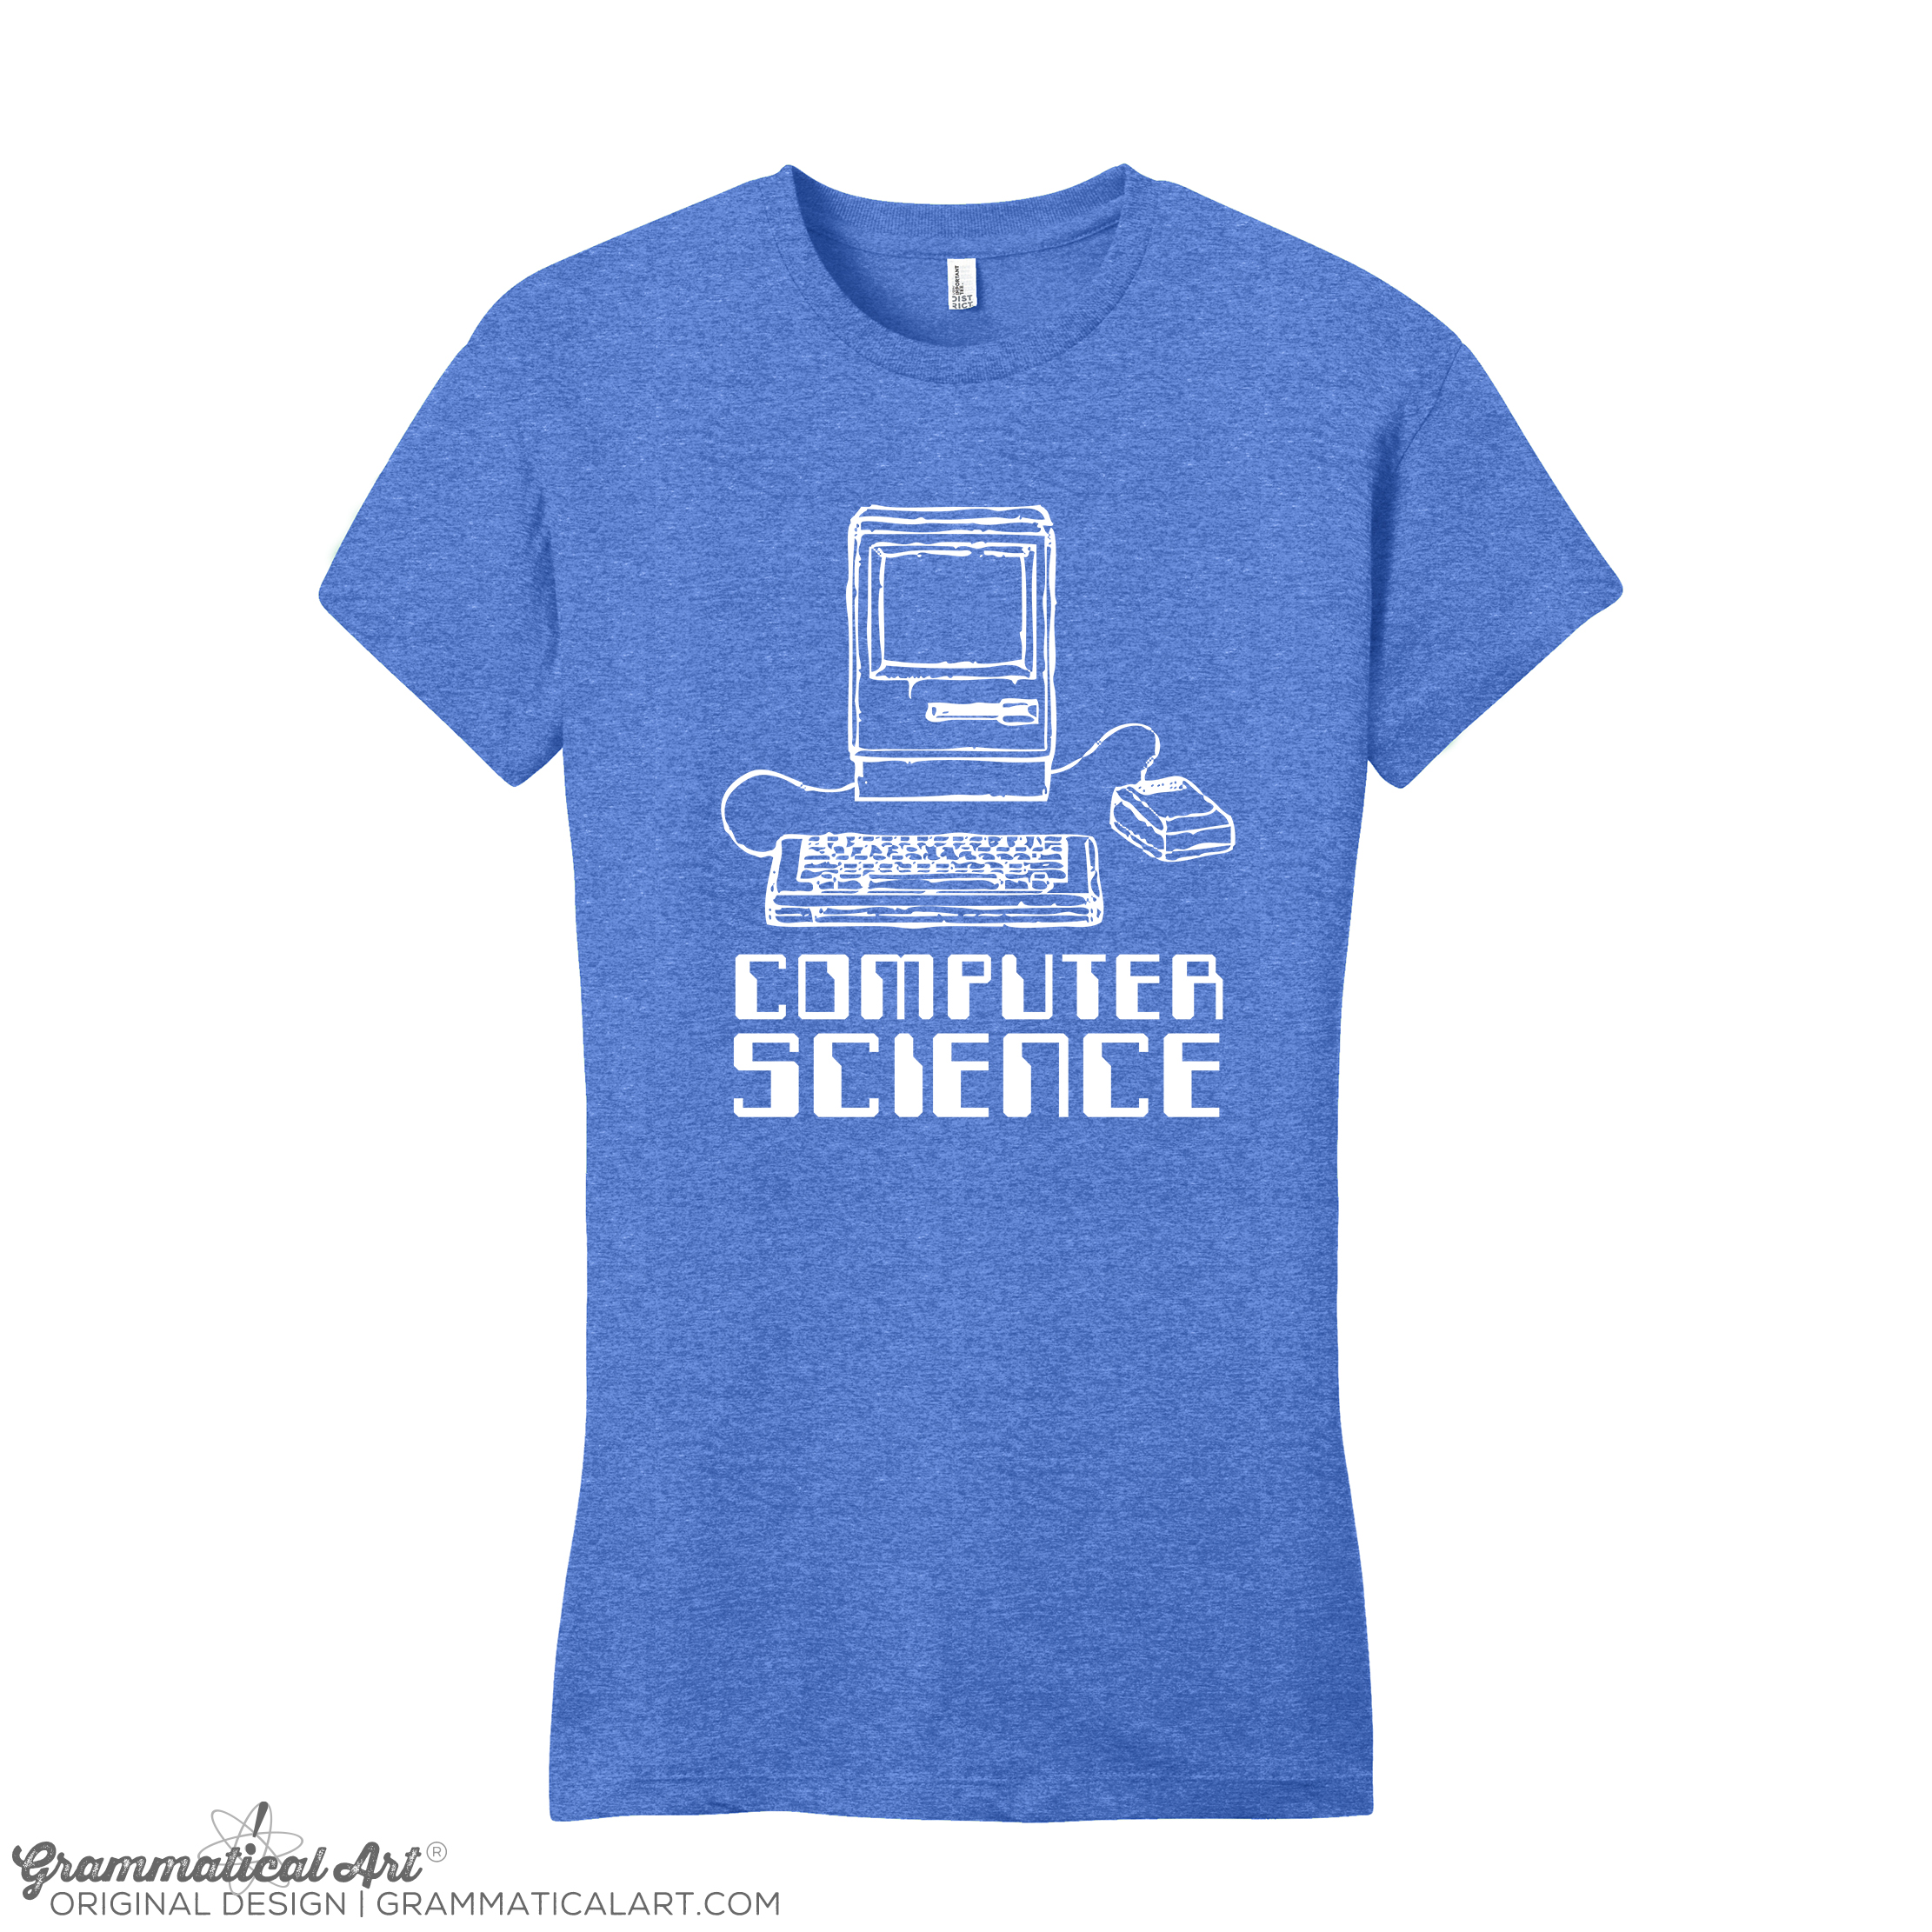 Women S Computer Science Shirt Grammatical Art